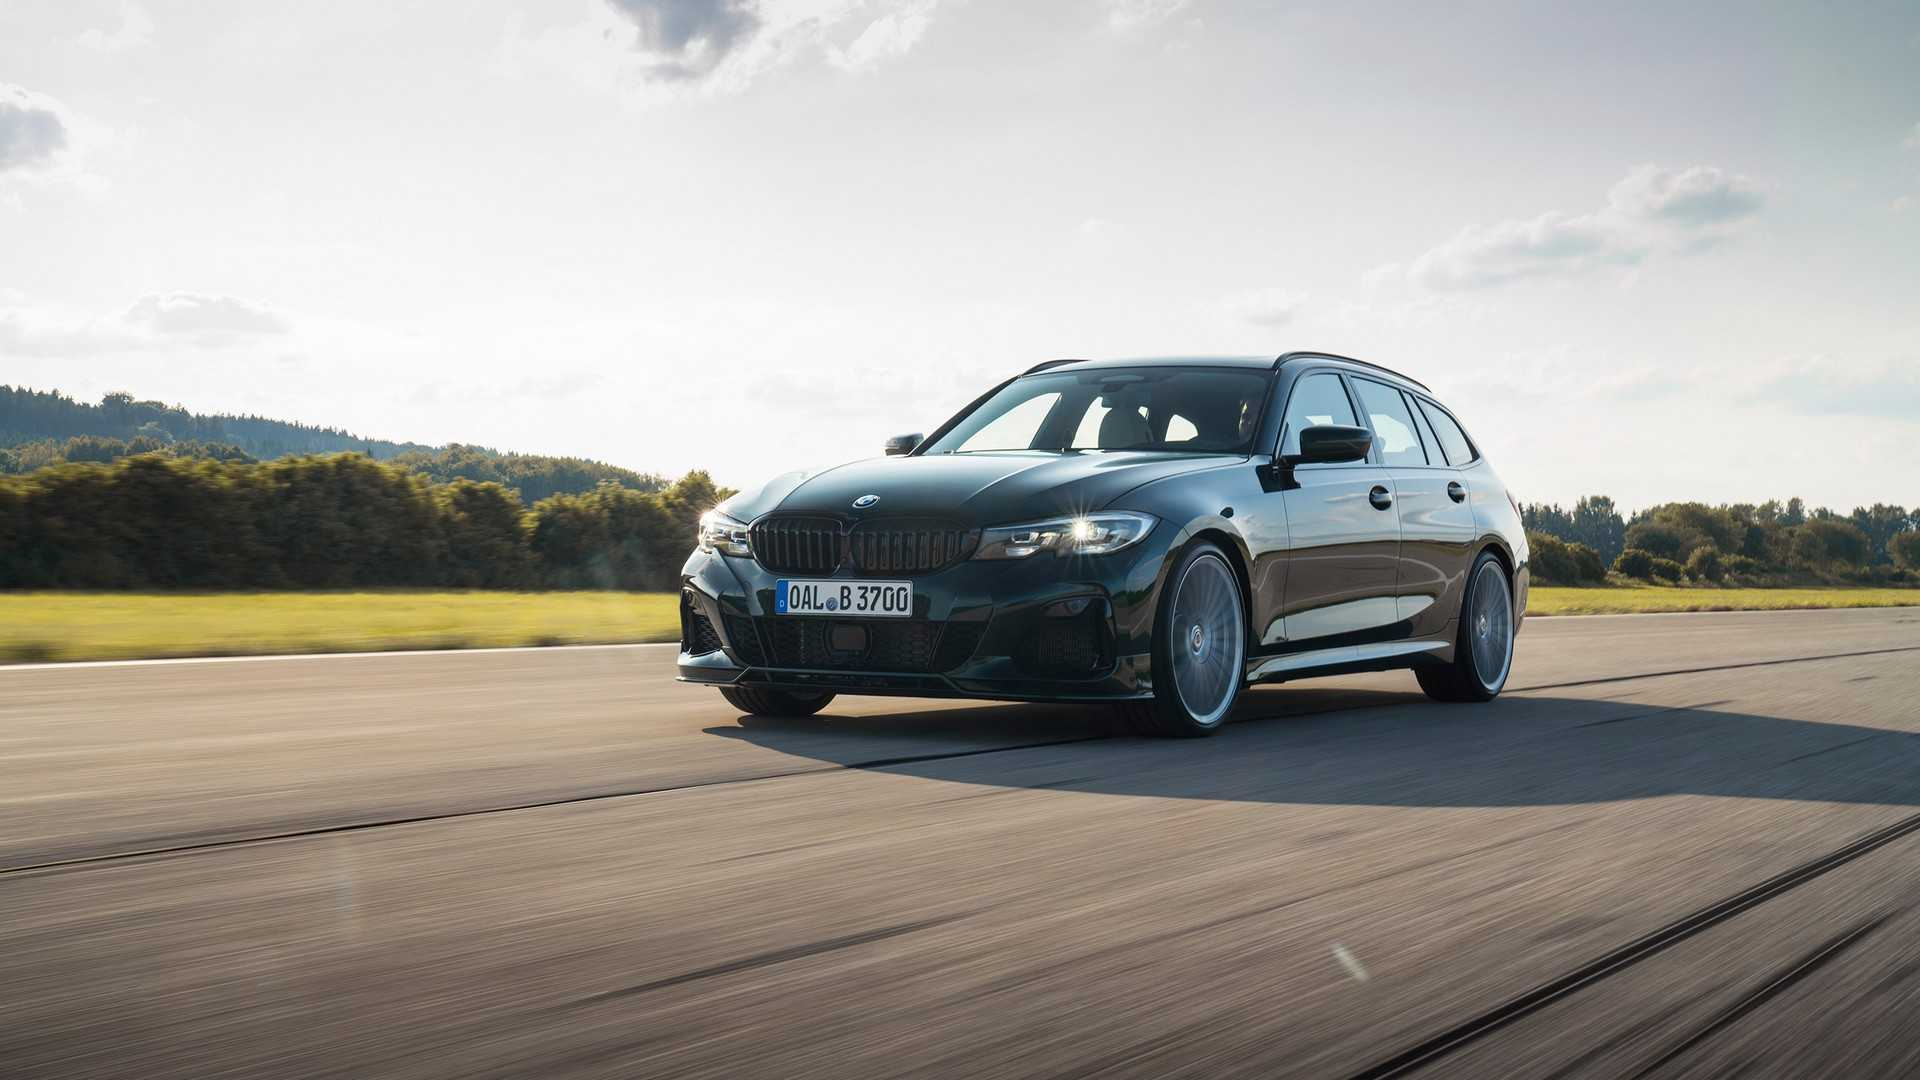 VIDEO: ALPINA B3 Touring is one of Carfection's stars of the 2019 IAA